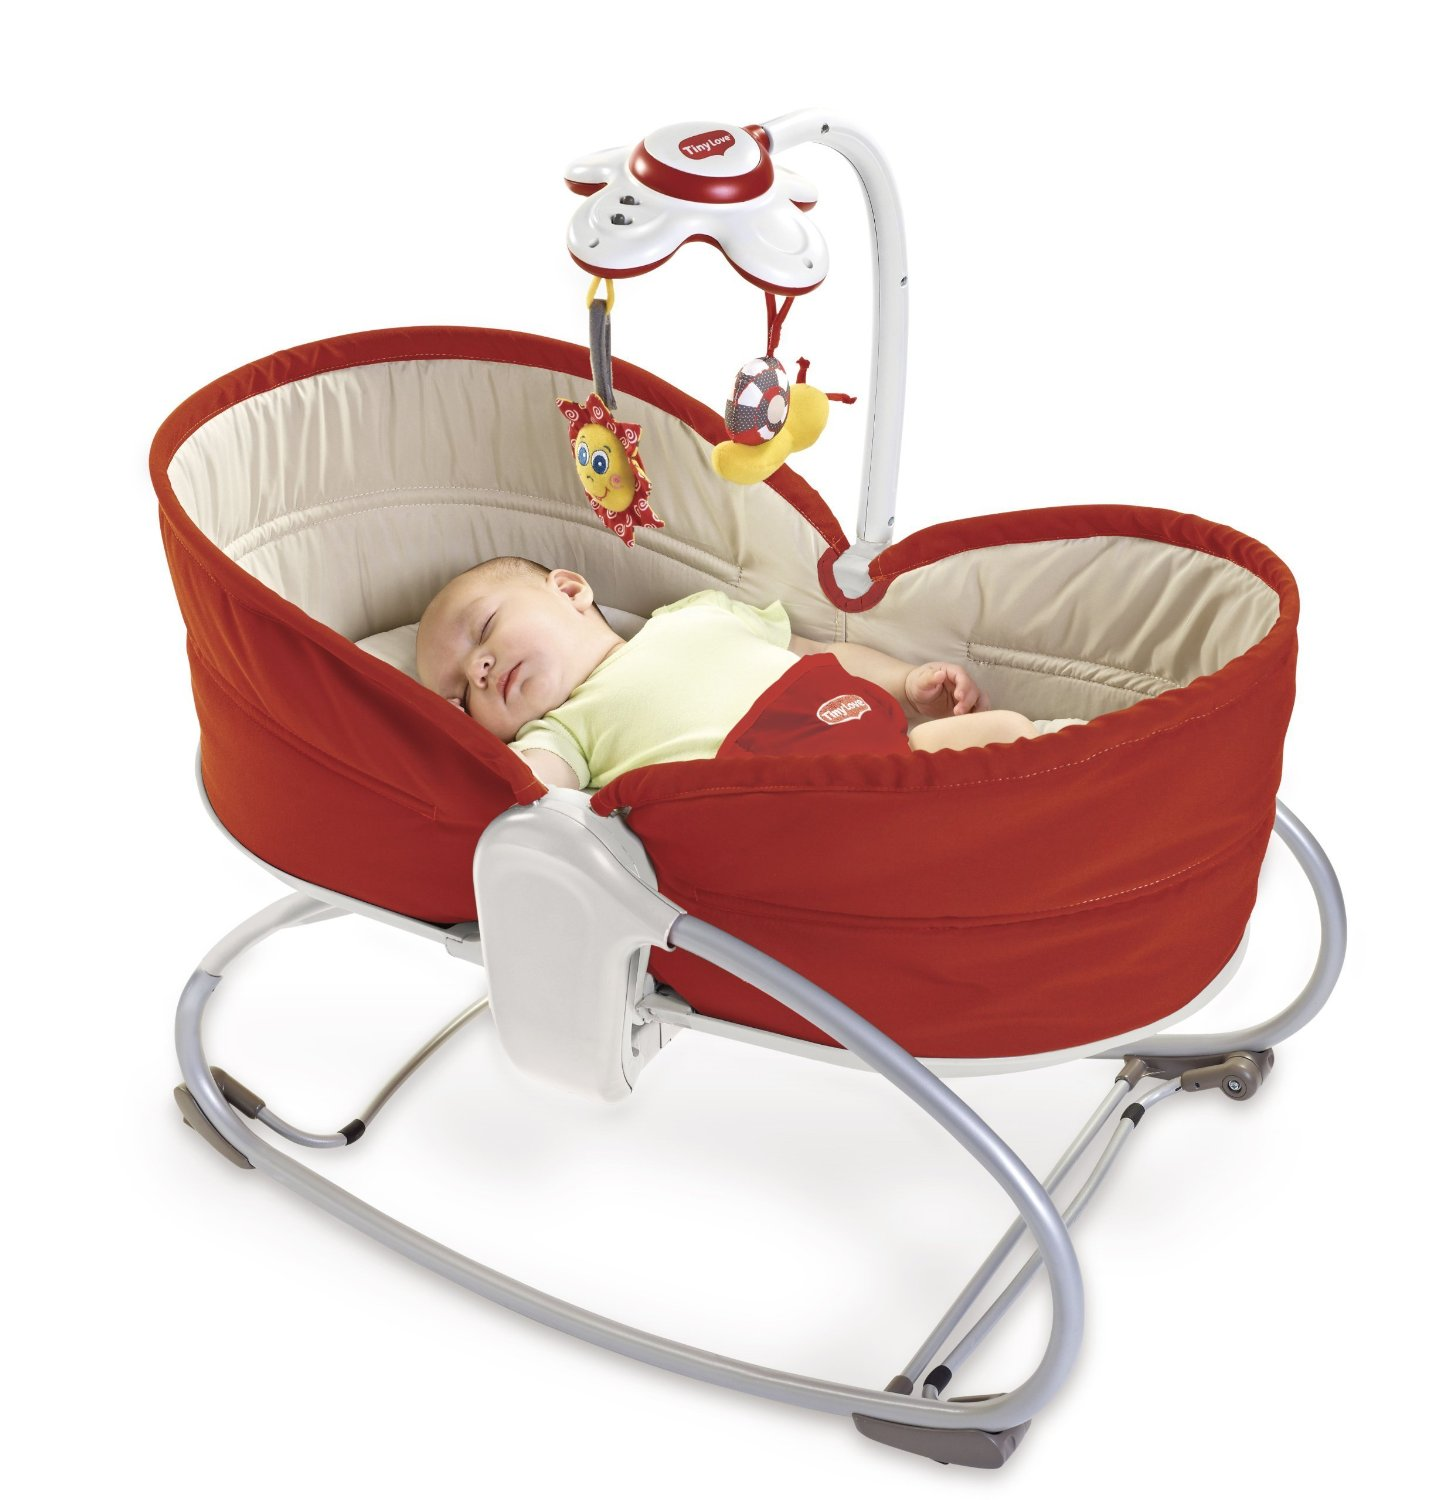 Tiny Love Transat & Balancelle Rocker Napper 3 en 1 Rouge